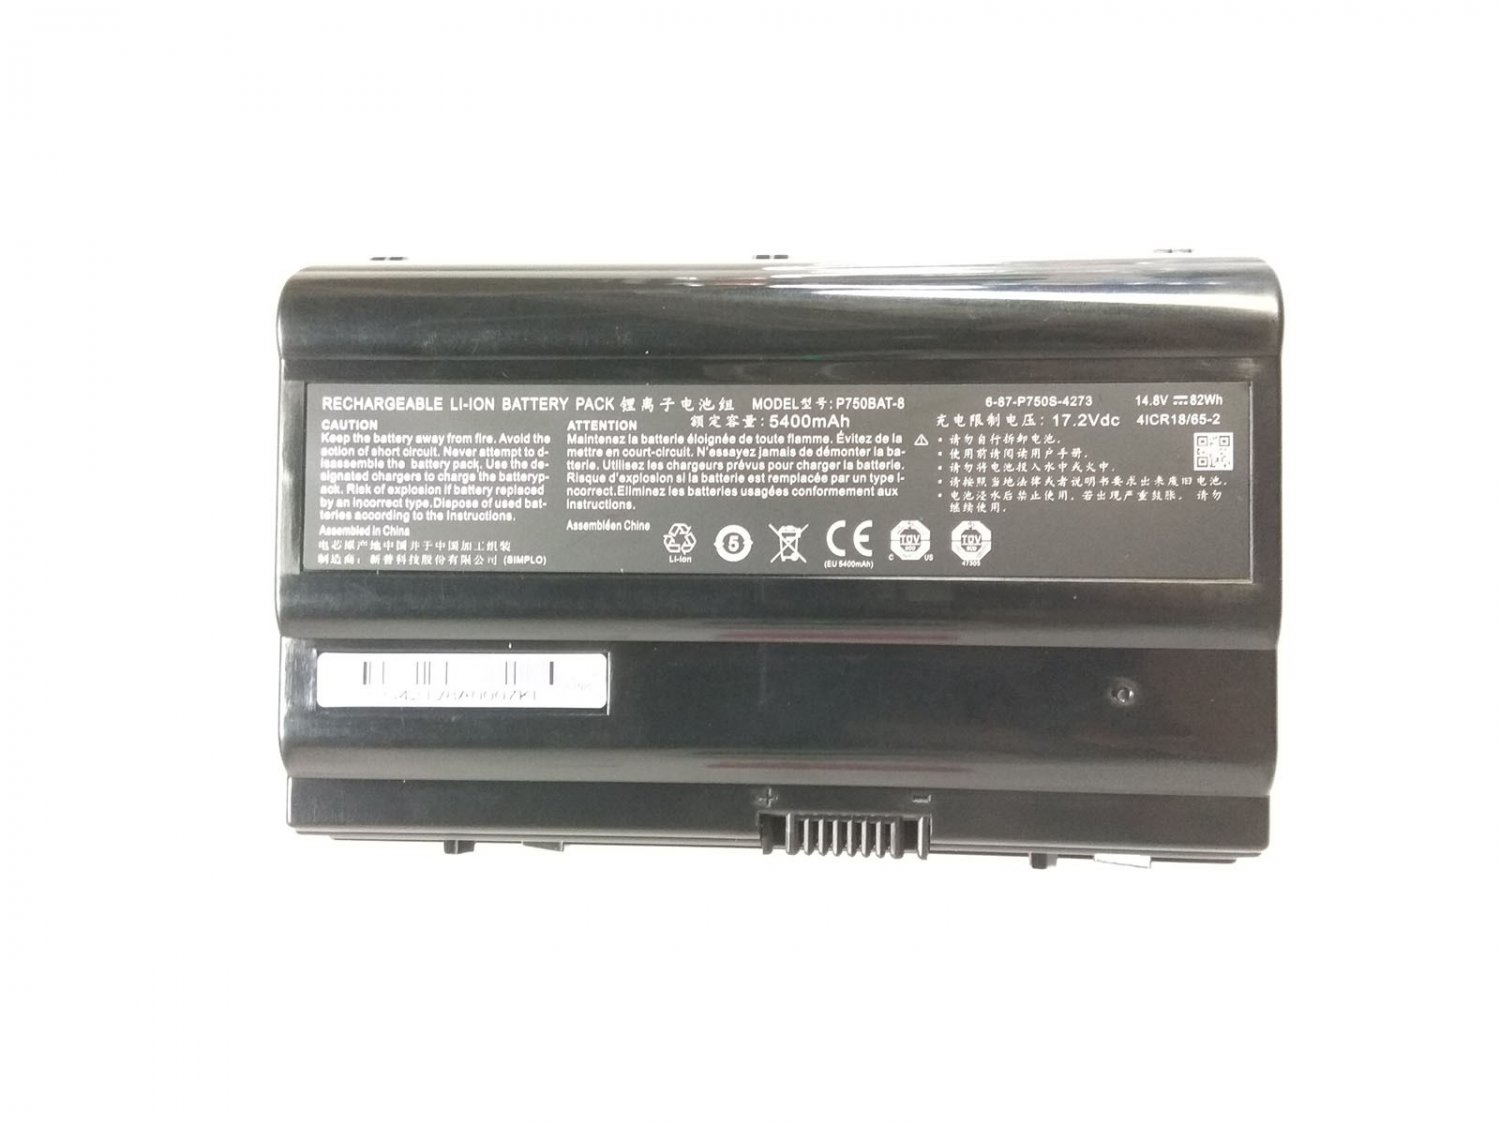 6-87-P750S-4272 Battery 6-87-P750S-4U73 For Sager NP9772 NP9772-S NP9773 NP9752